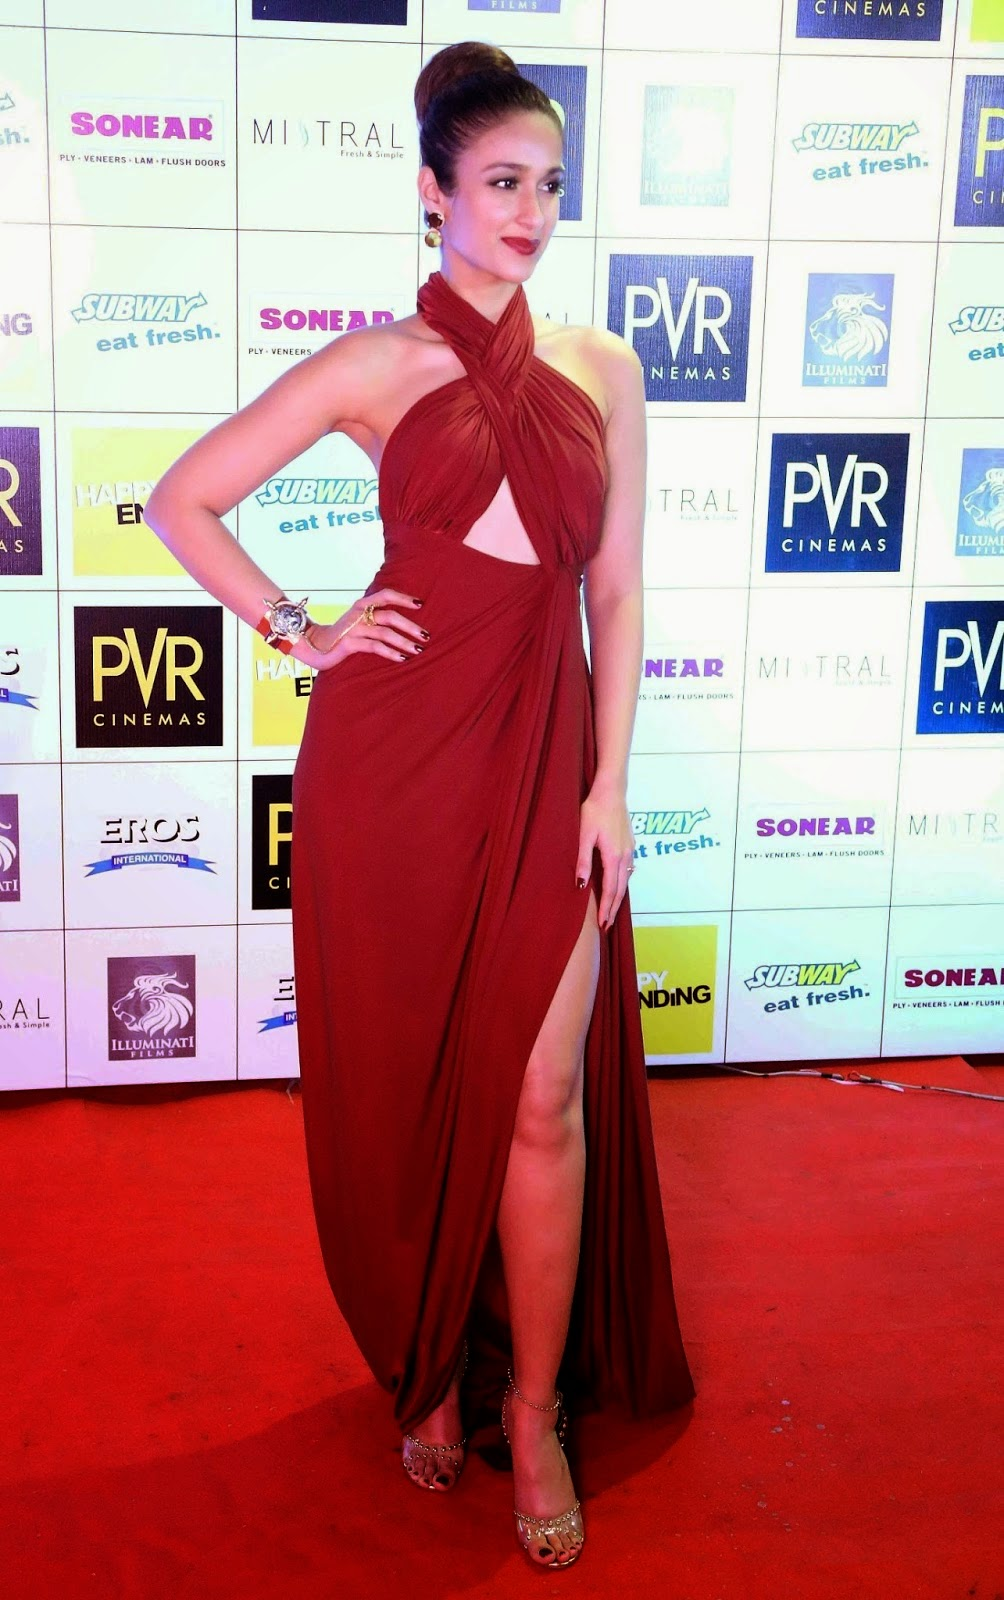 Ileana D'Cruz Looks Hot in Red Dress at the Premiere of Film 'Happy Ending'